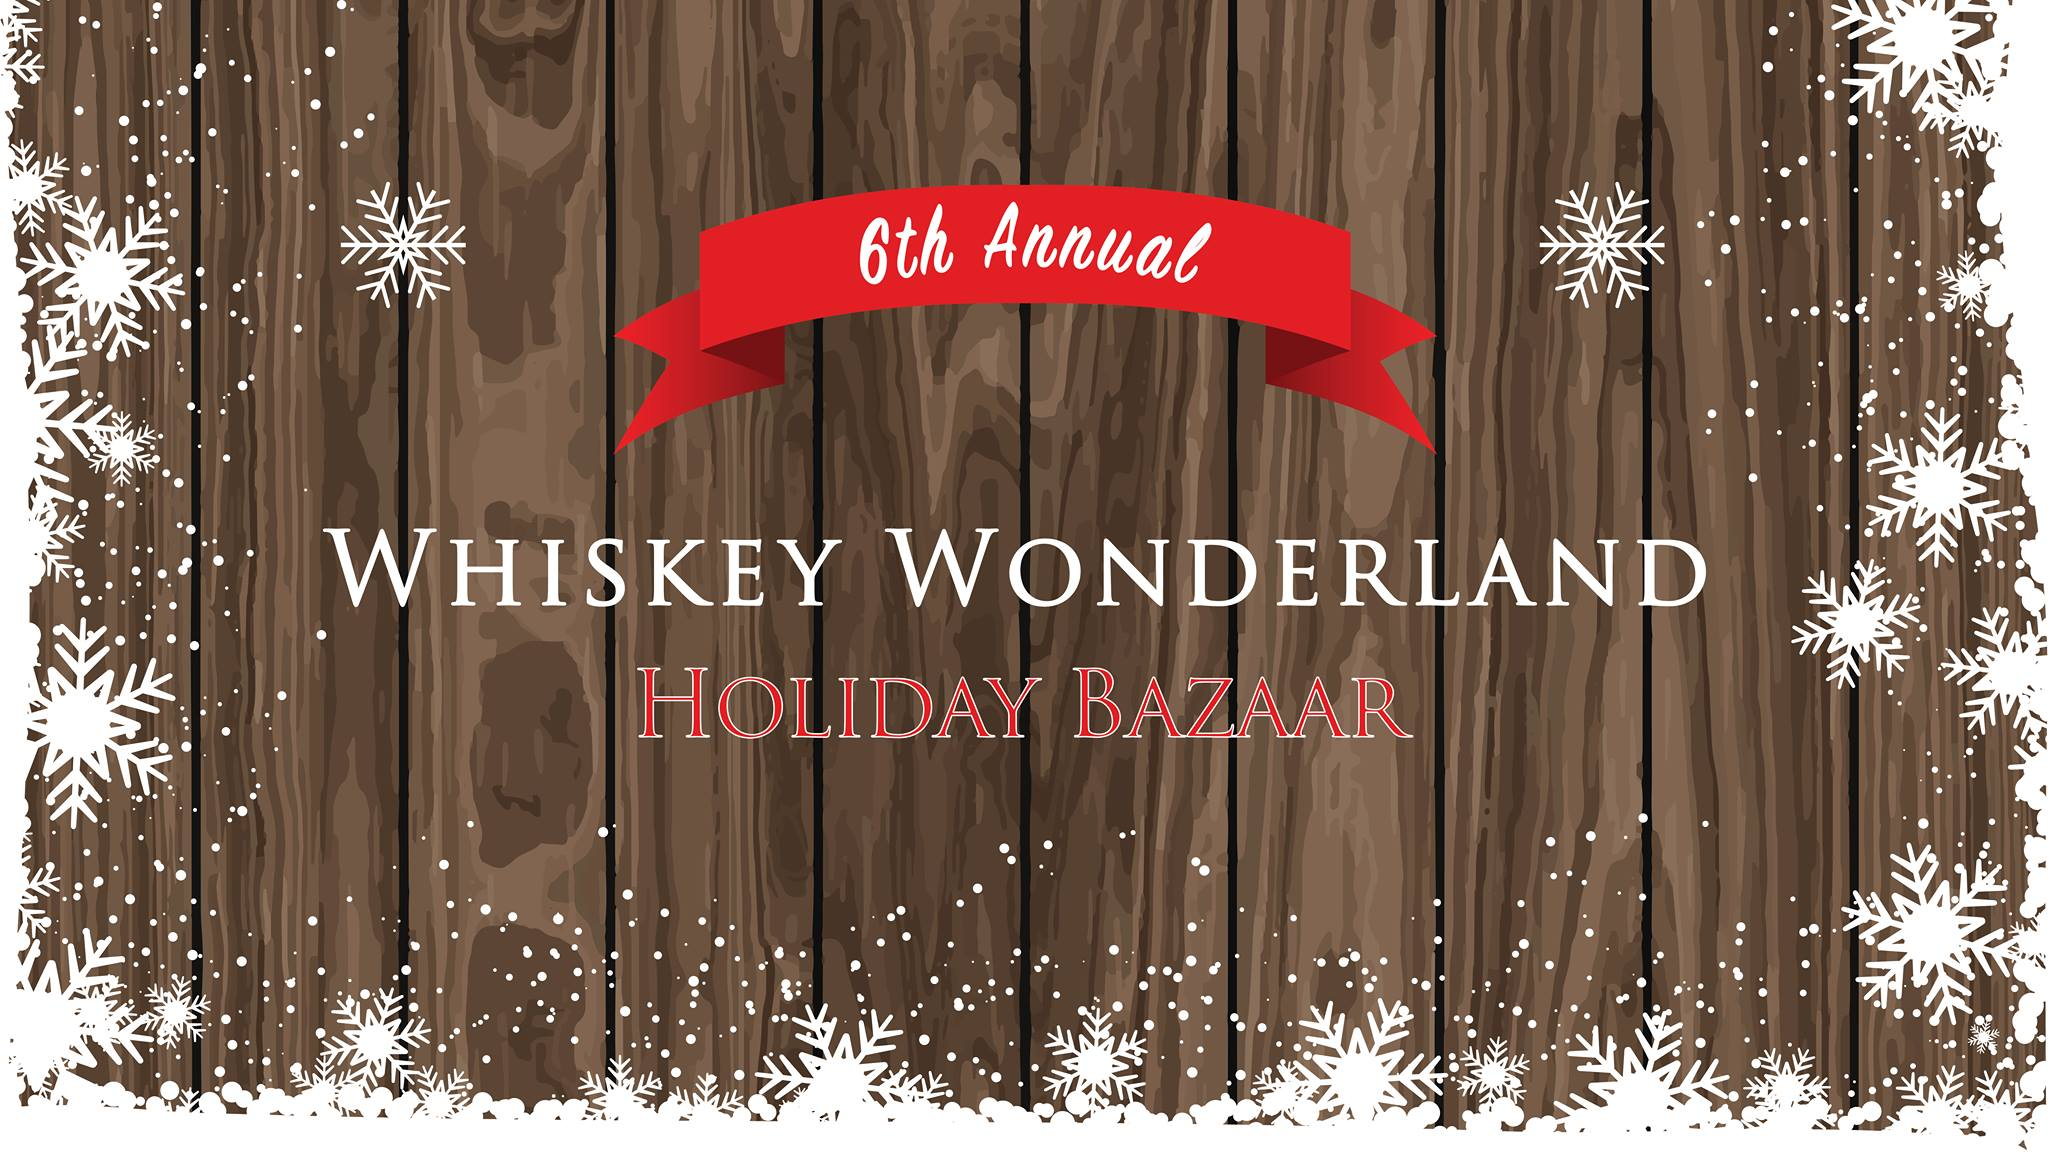 December 14 -15, 2018: Whiskey Wonderland Holiday Bazaar